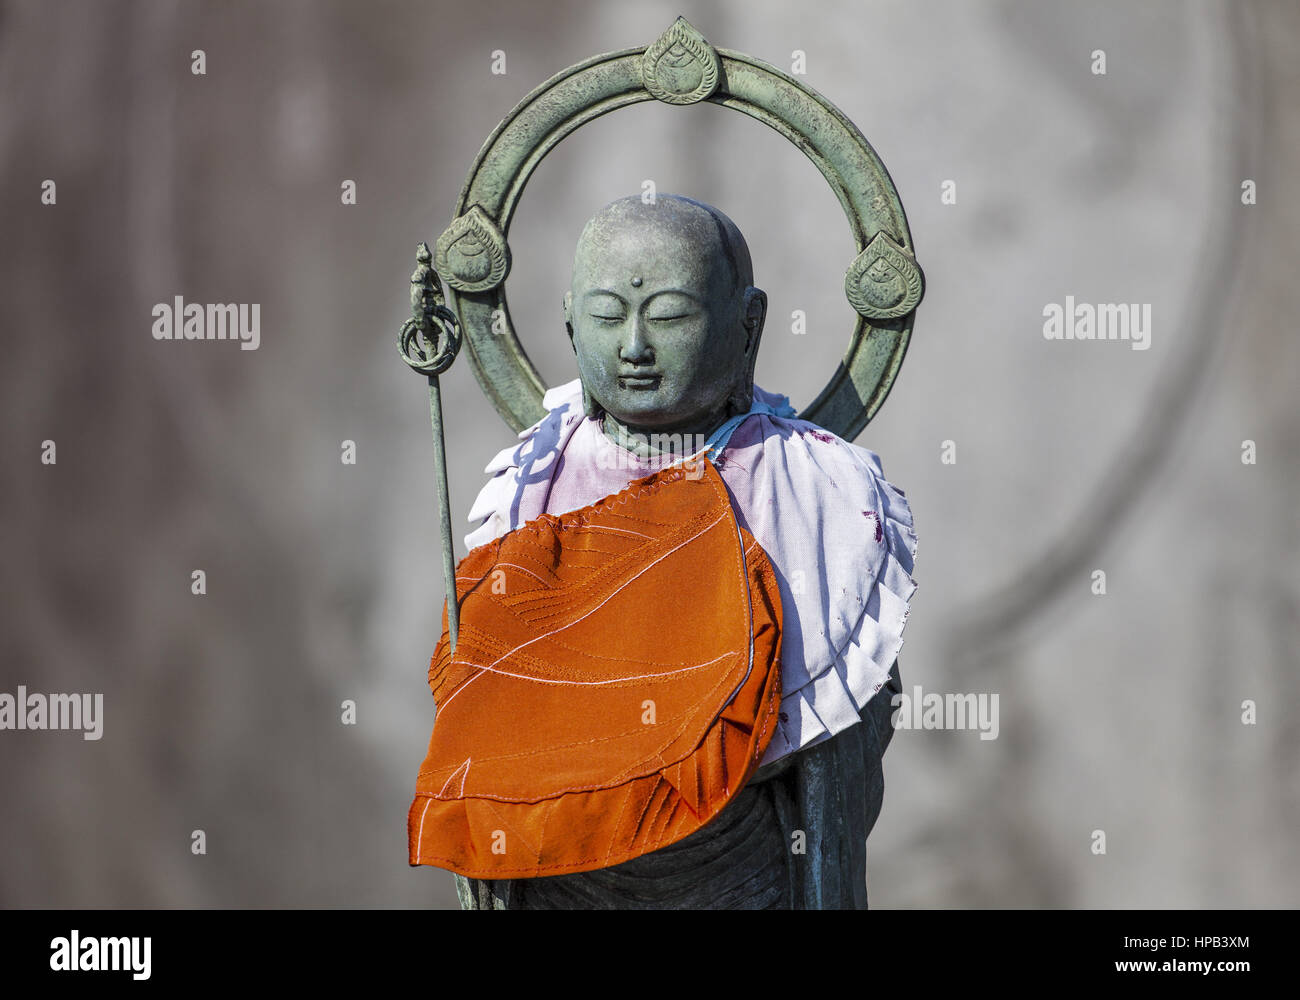 Buddhistisches Symbol, Tokio, Japan - Stock Image